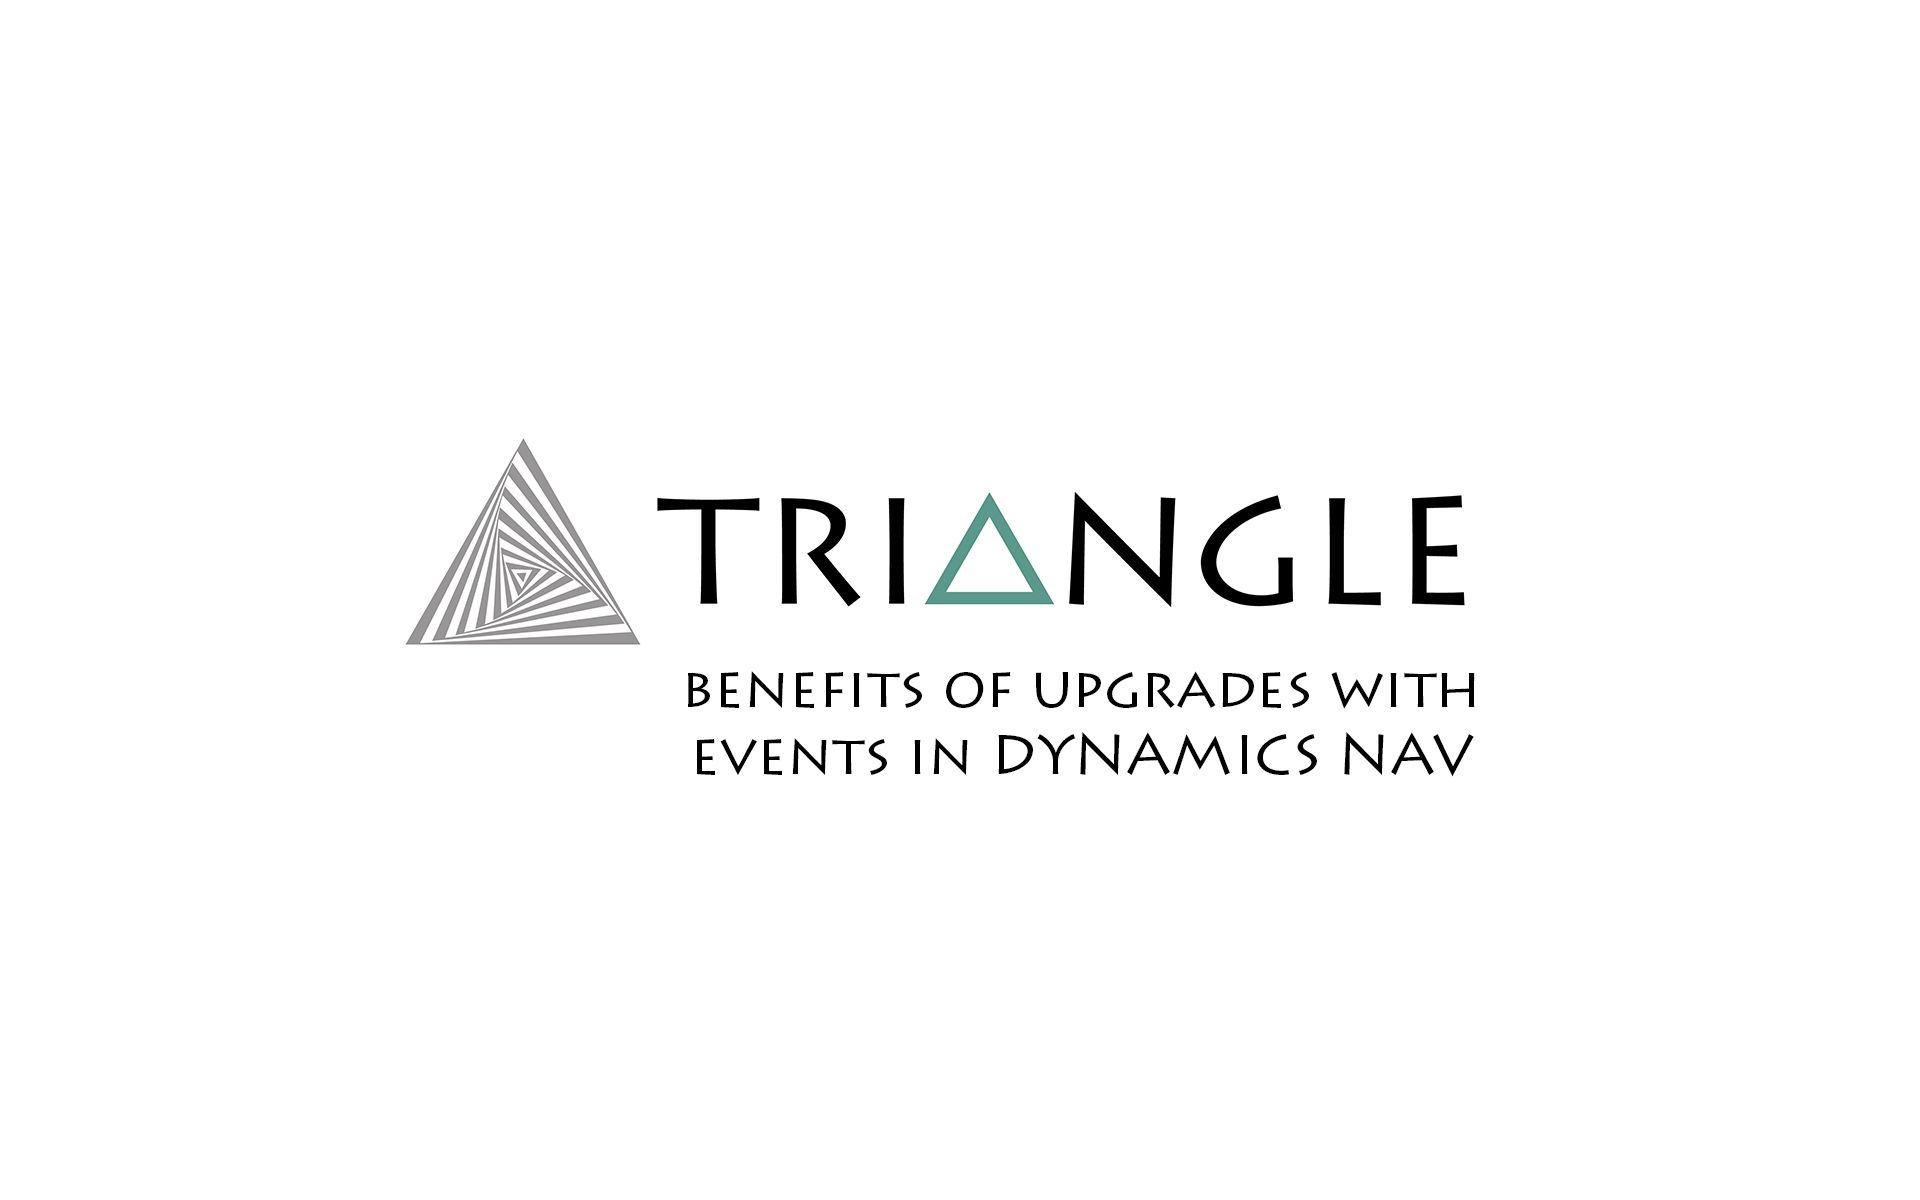 Benefits Upgrade Events Dynamics NAV